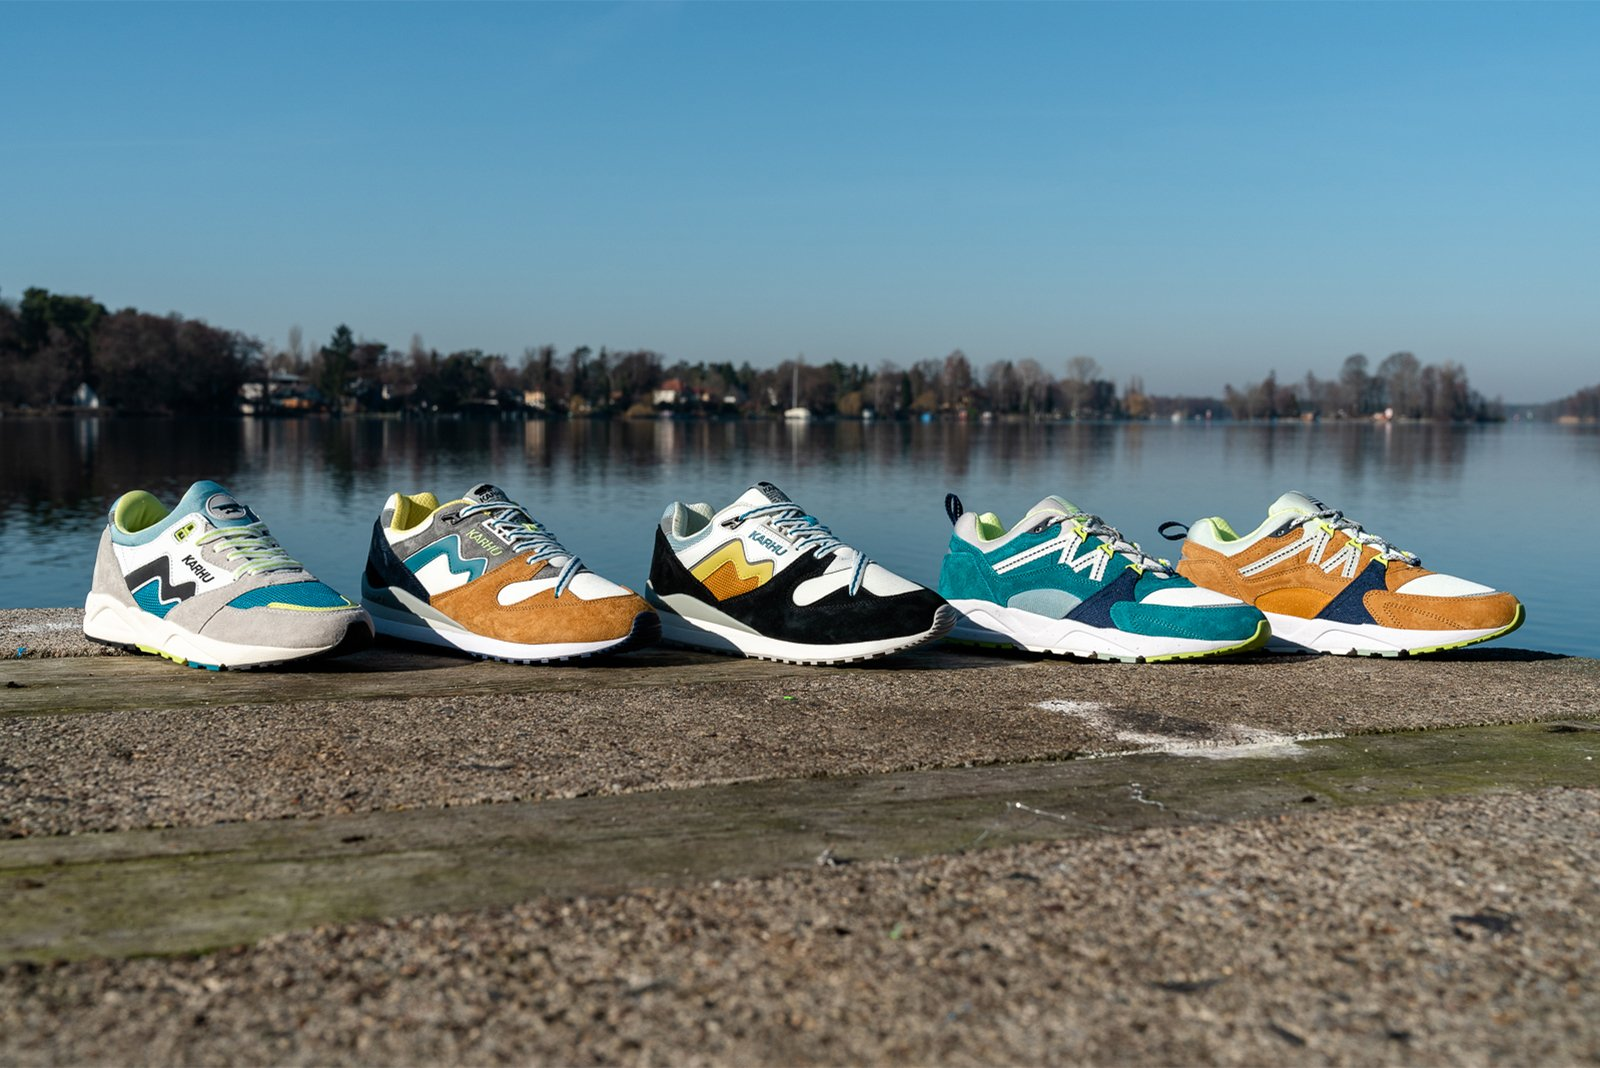 Karhu_Mood_CatchOfTheDay1_Group_01.jpg